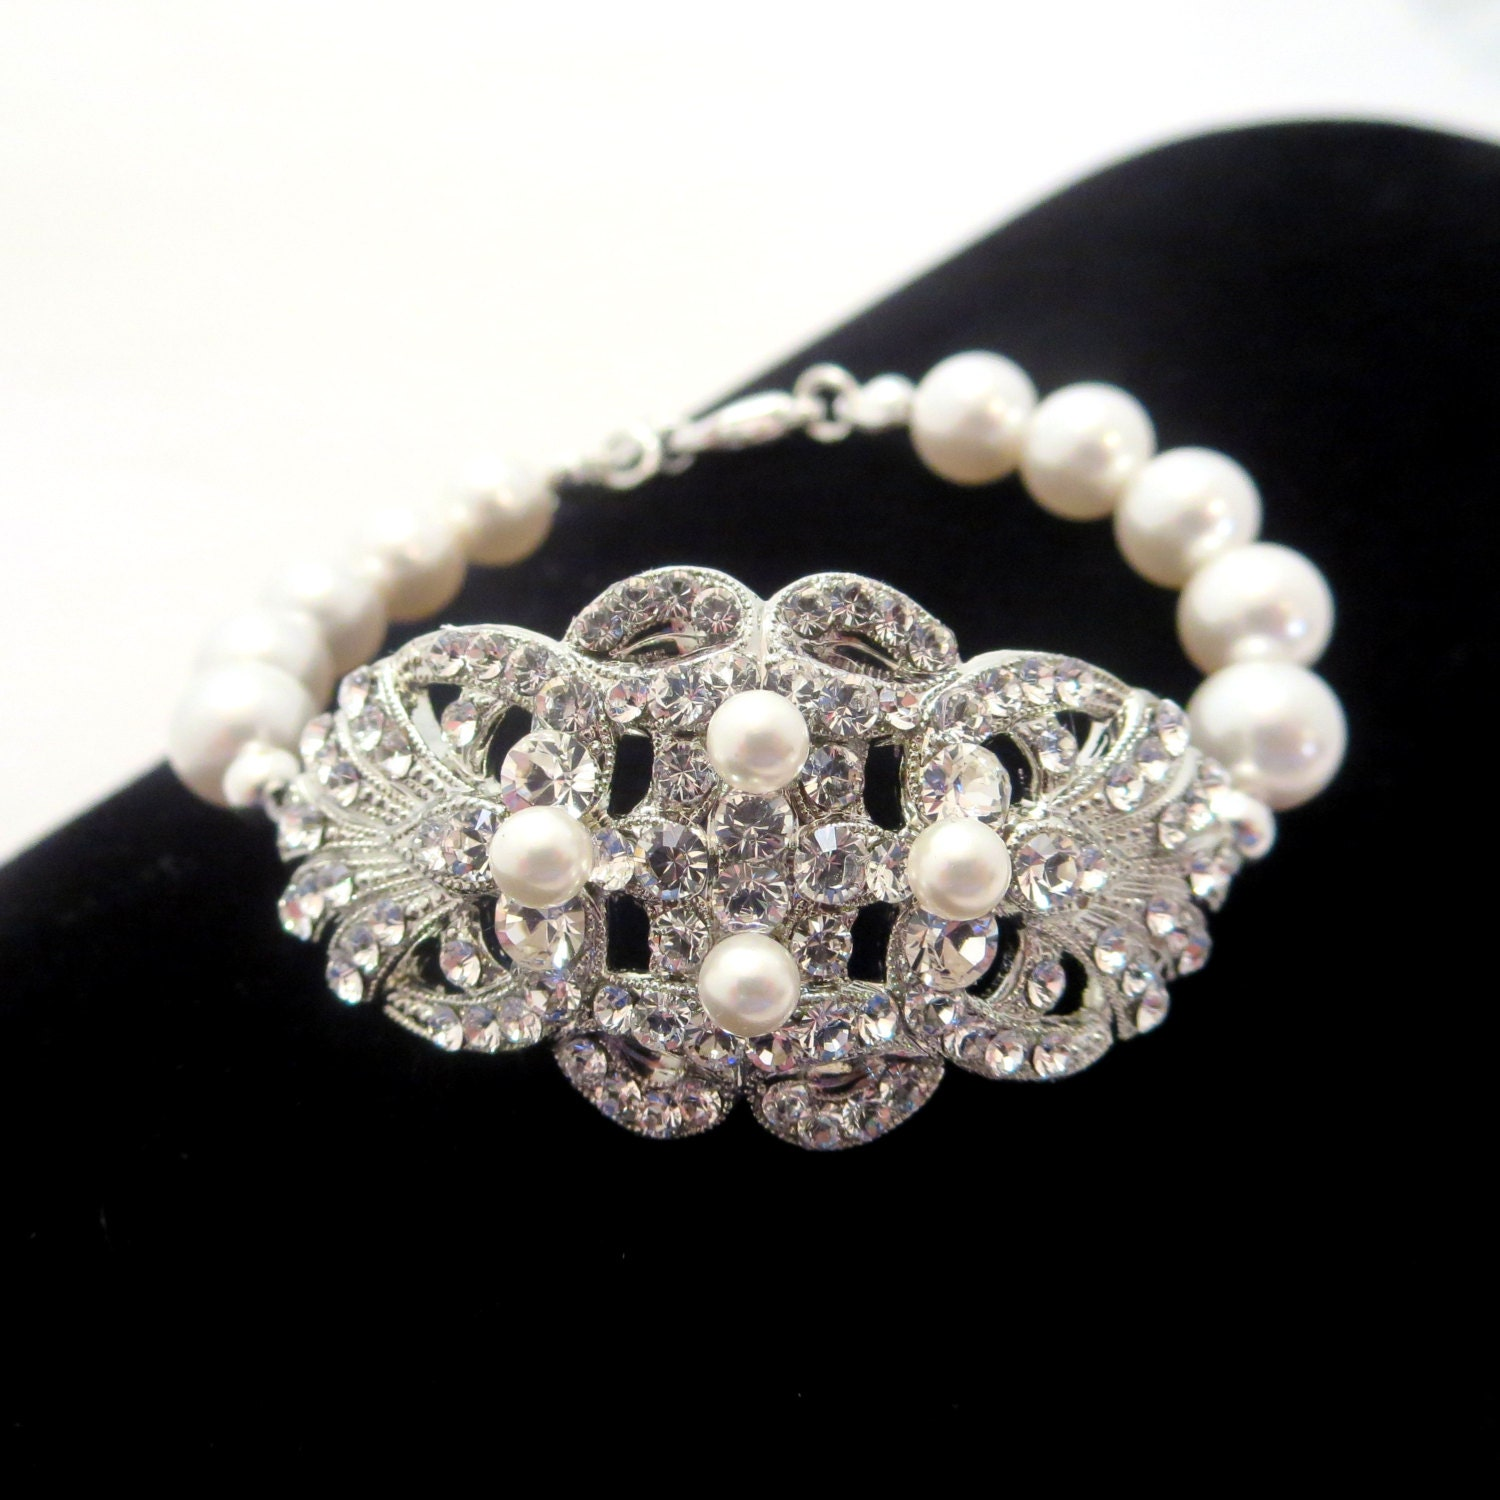 Rhinestone and pearl bracelet, bridal bracelet, Swarovski crystal bracelet, wedding jewelry, wedding bracelet